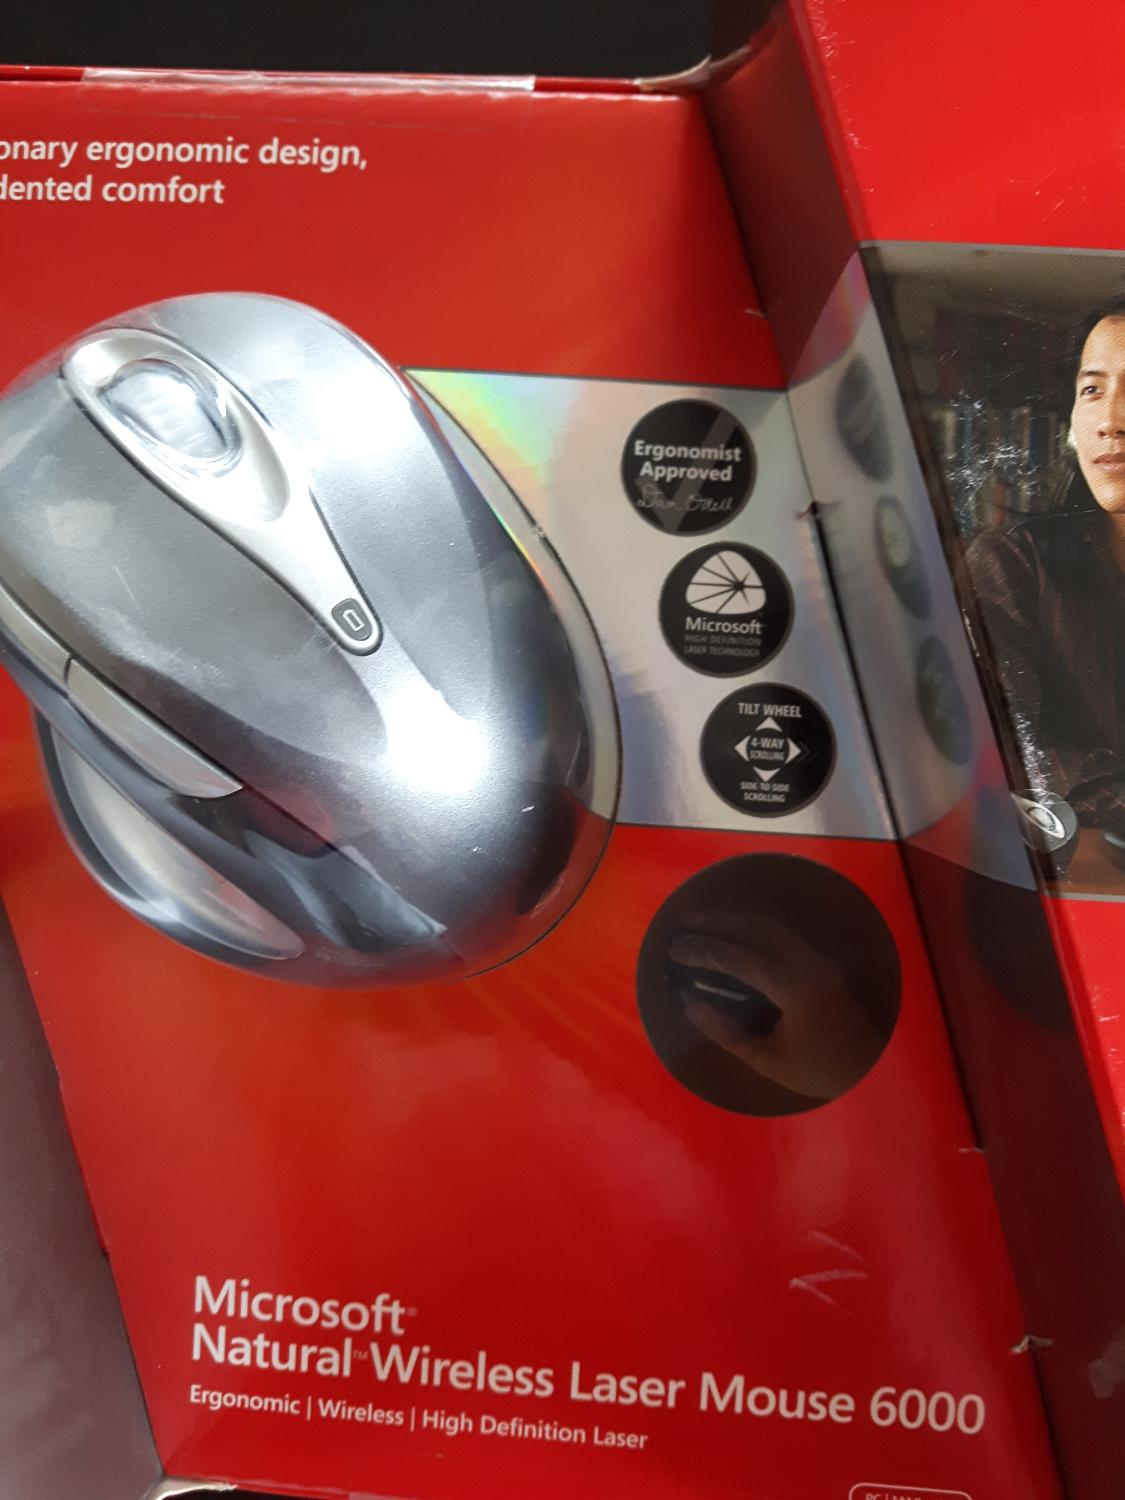 dfd25b7471b Best Microsoft Wireless Laser Mouse 6000 Price Drop for sale in Etobicoke,  Ontario for 2019